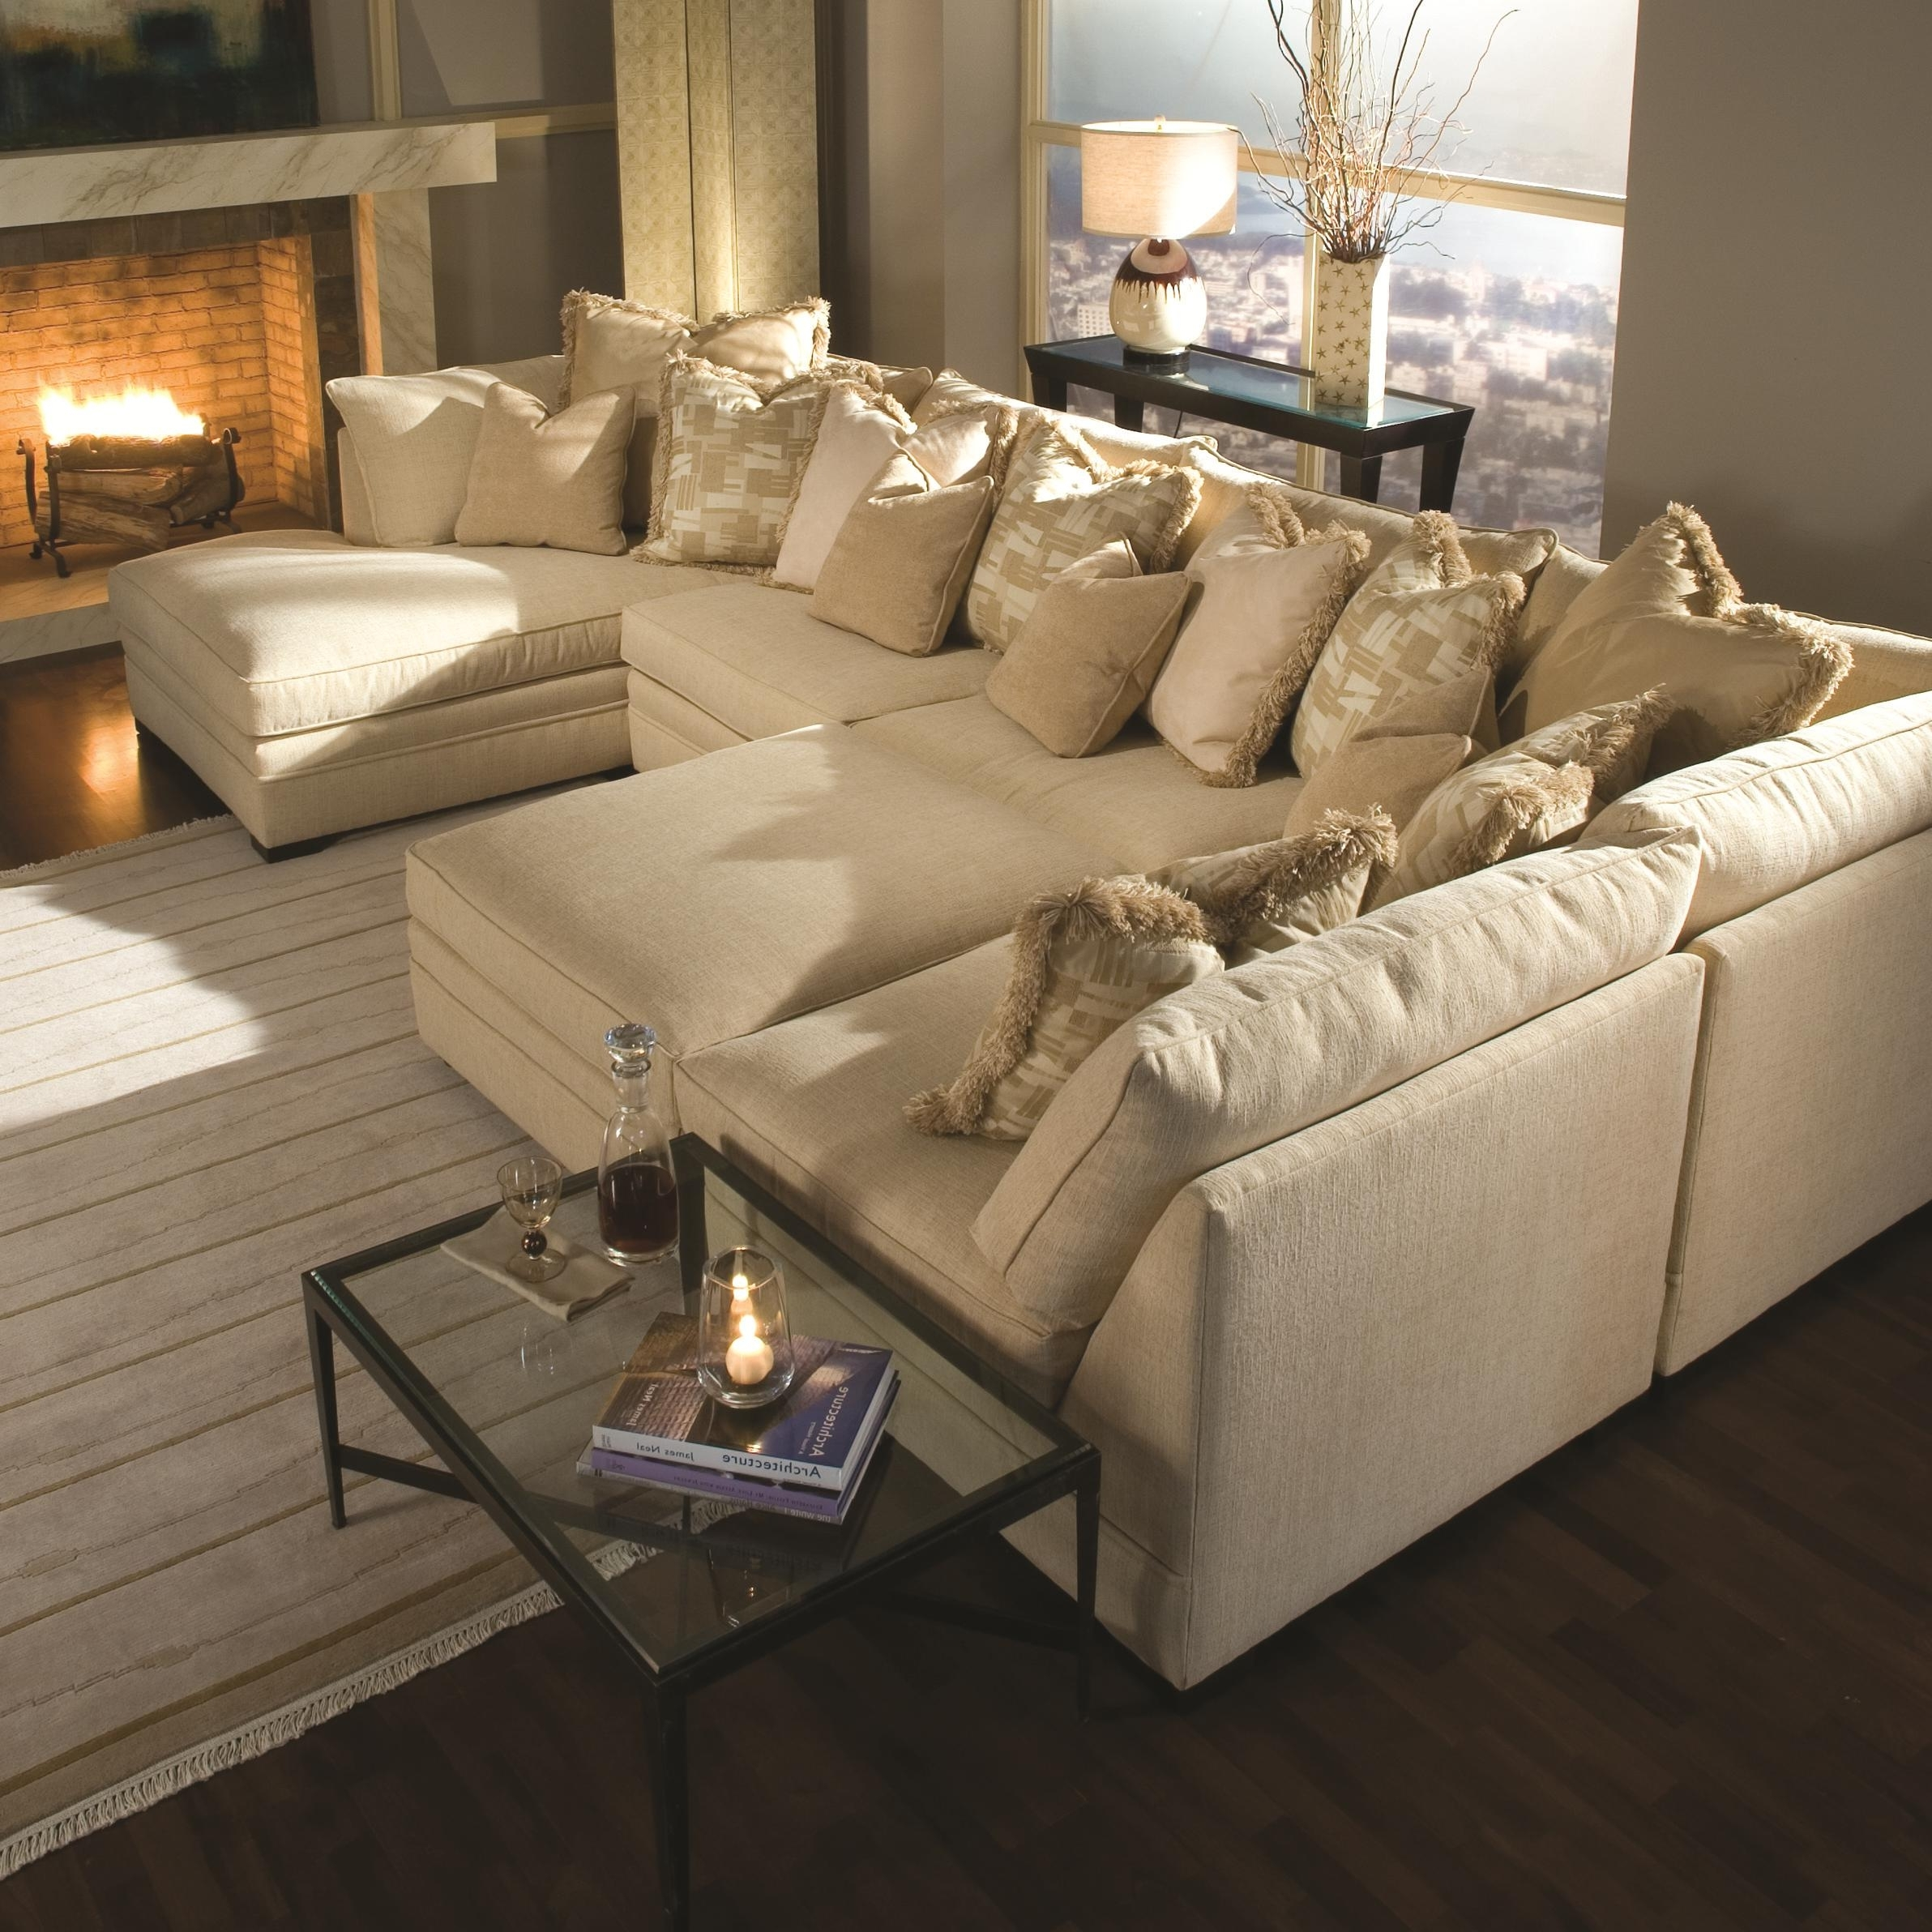 Most Recent U Shaped Sectionals With Chaise Throughout Huntington House 7100 Contemporary U Shape Sectional Sofa With (View 5 of 15)